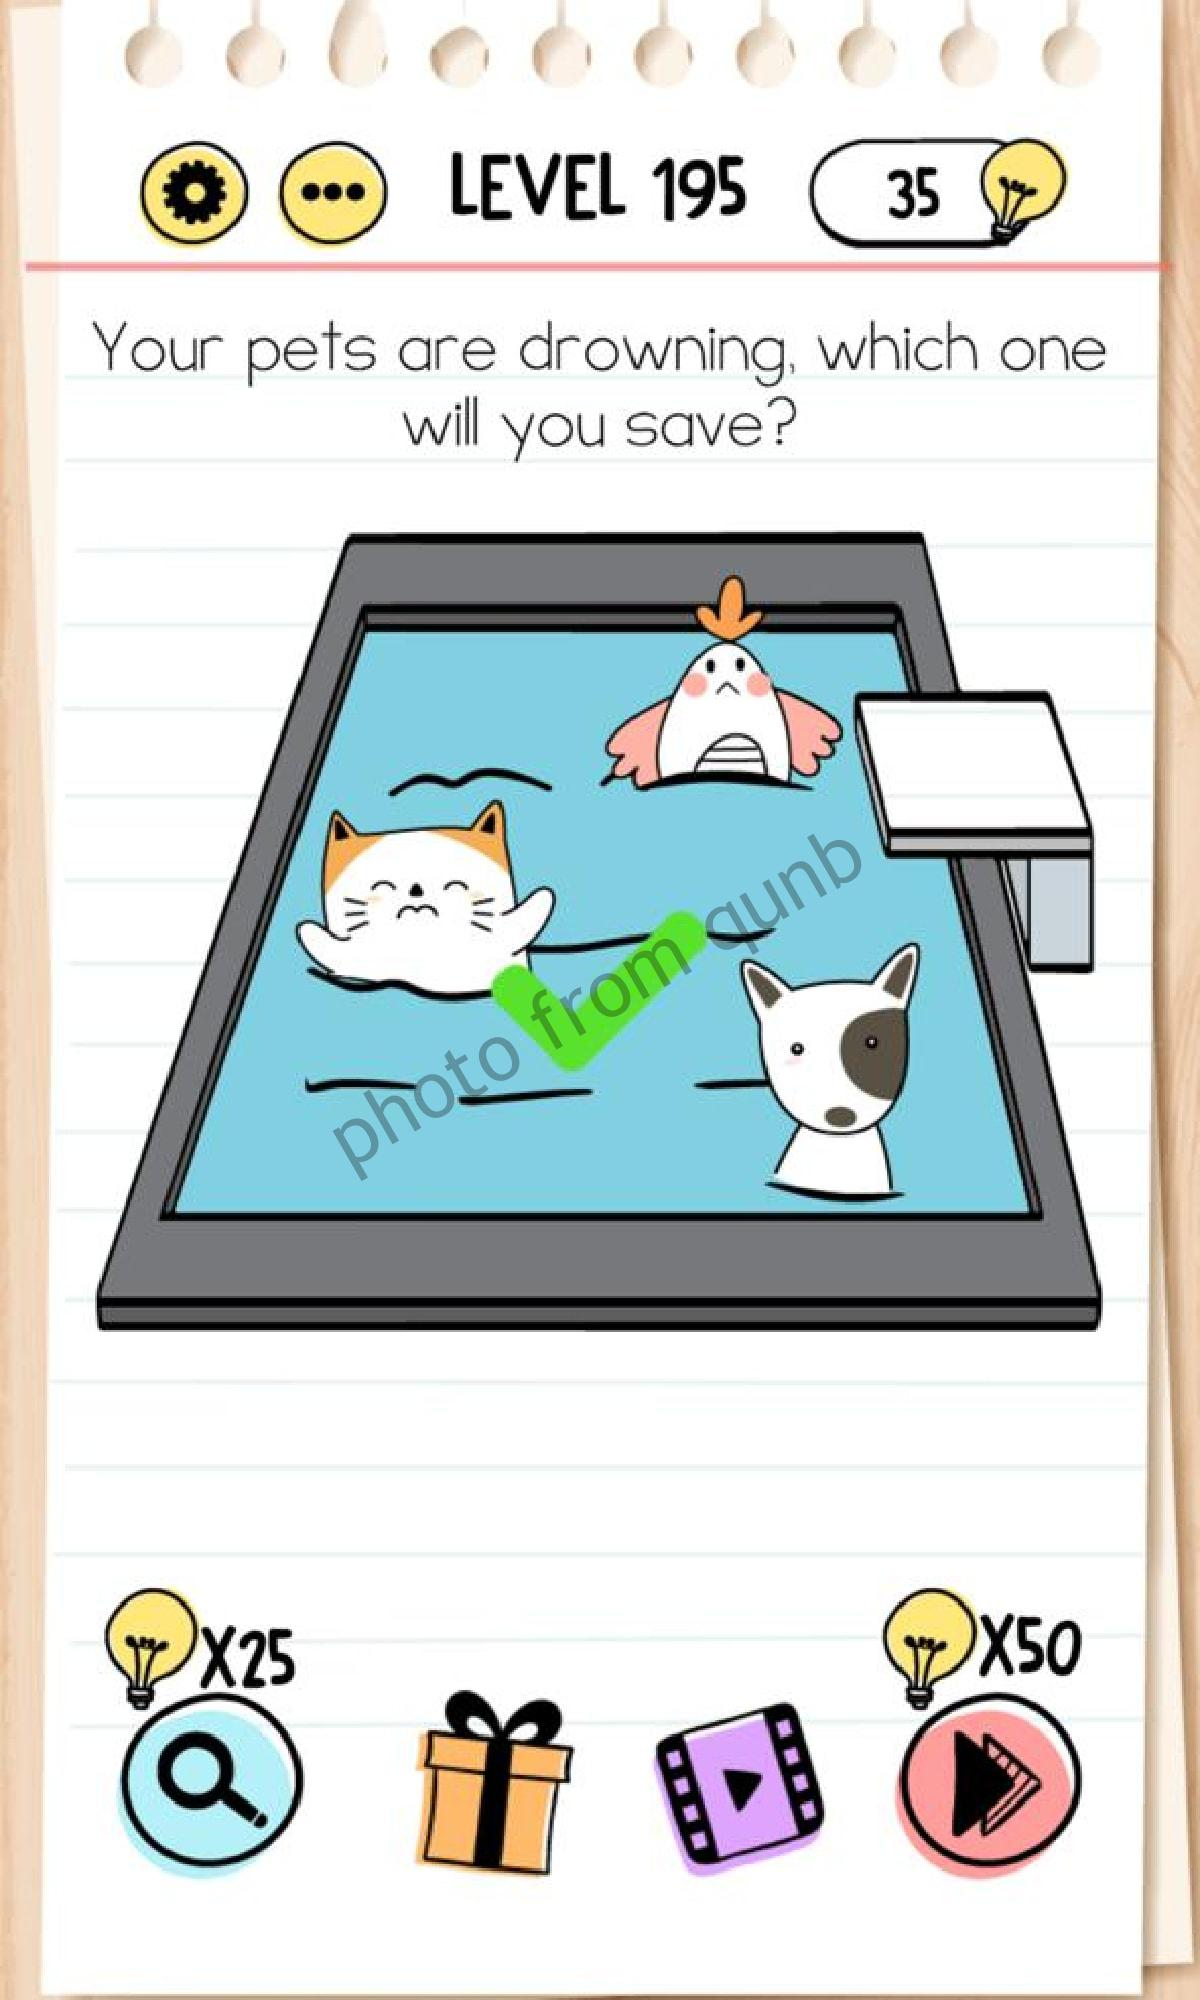 Brain Test Level 195 Your Pets Are Drowning Which One Will You Save Answers Solutions Qunb